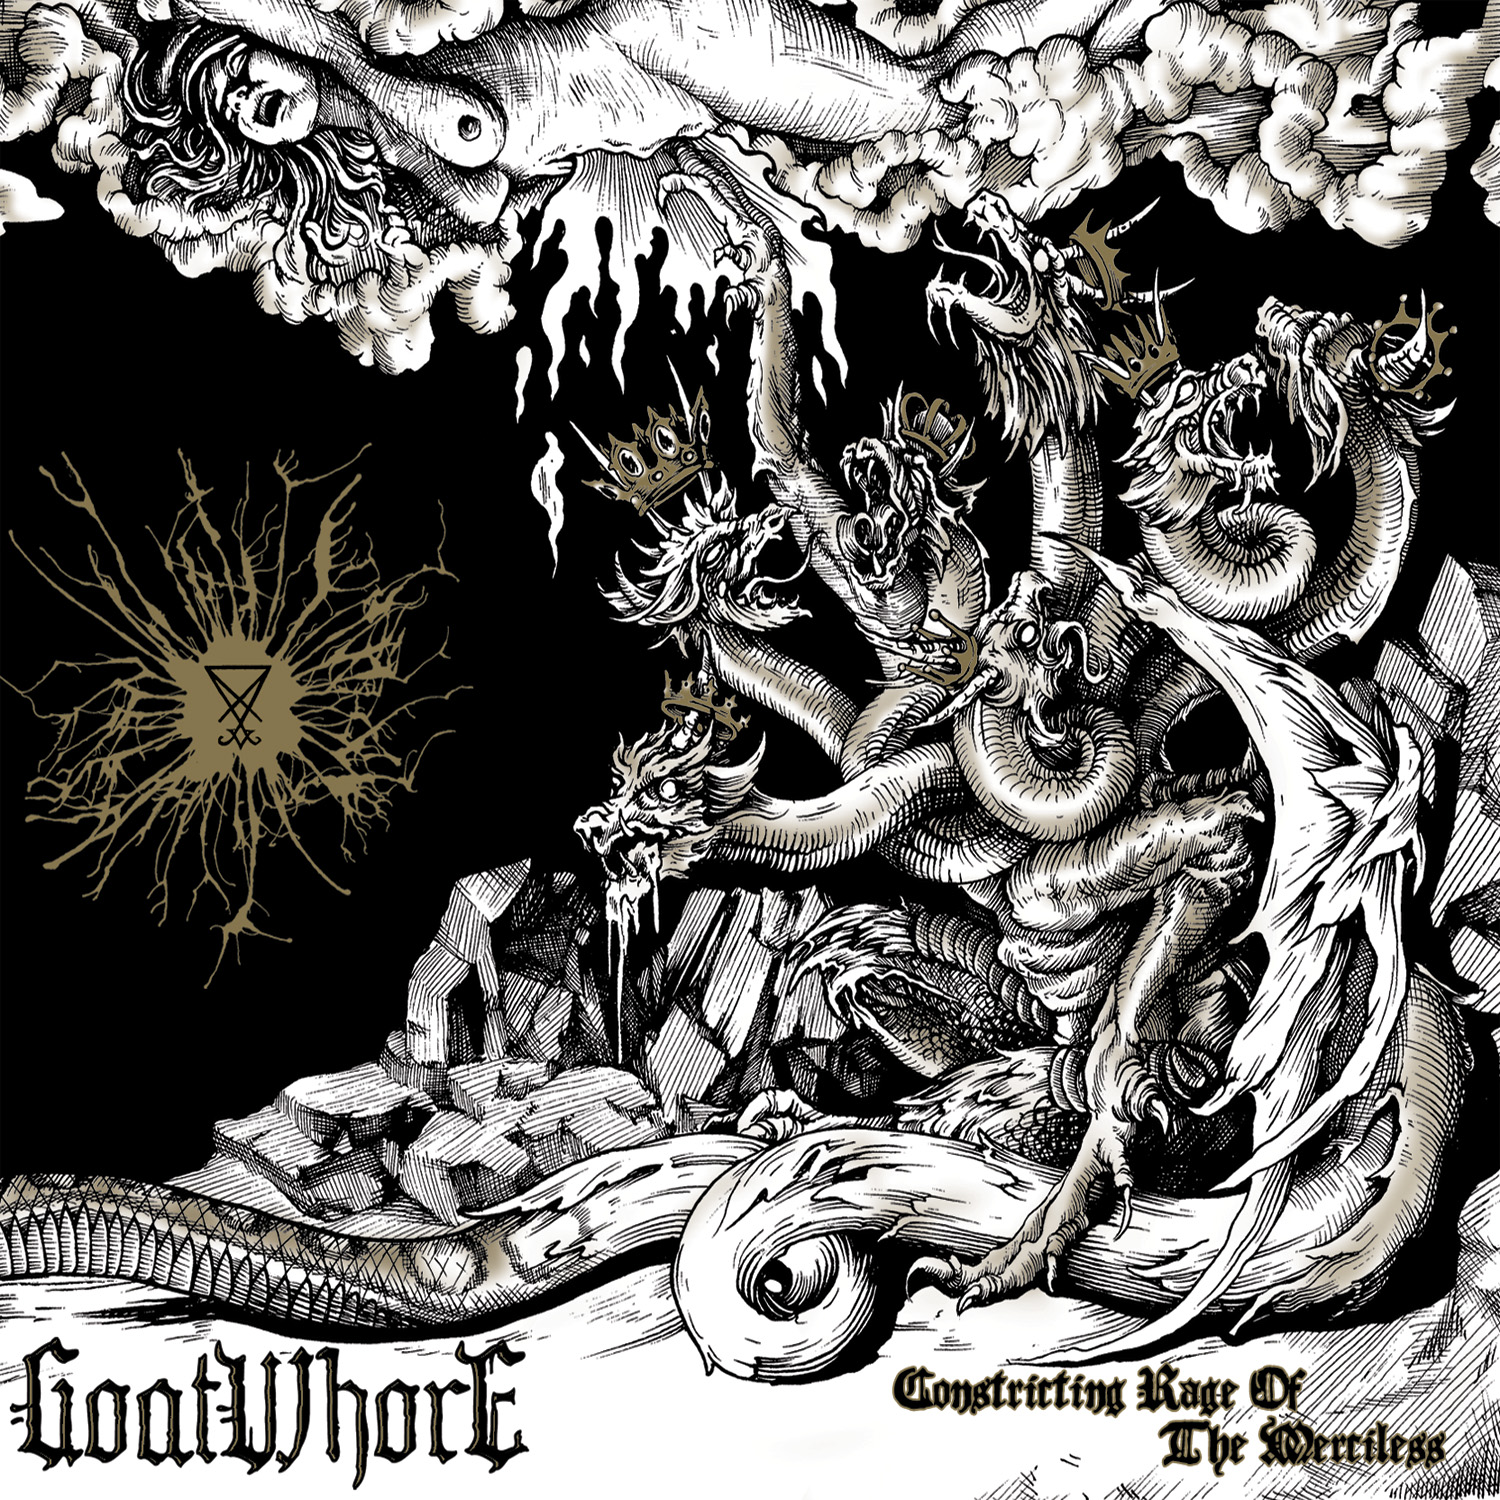 Goatwhore – 'Constricting Rage of the Merciless'